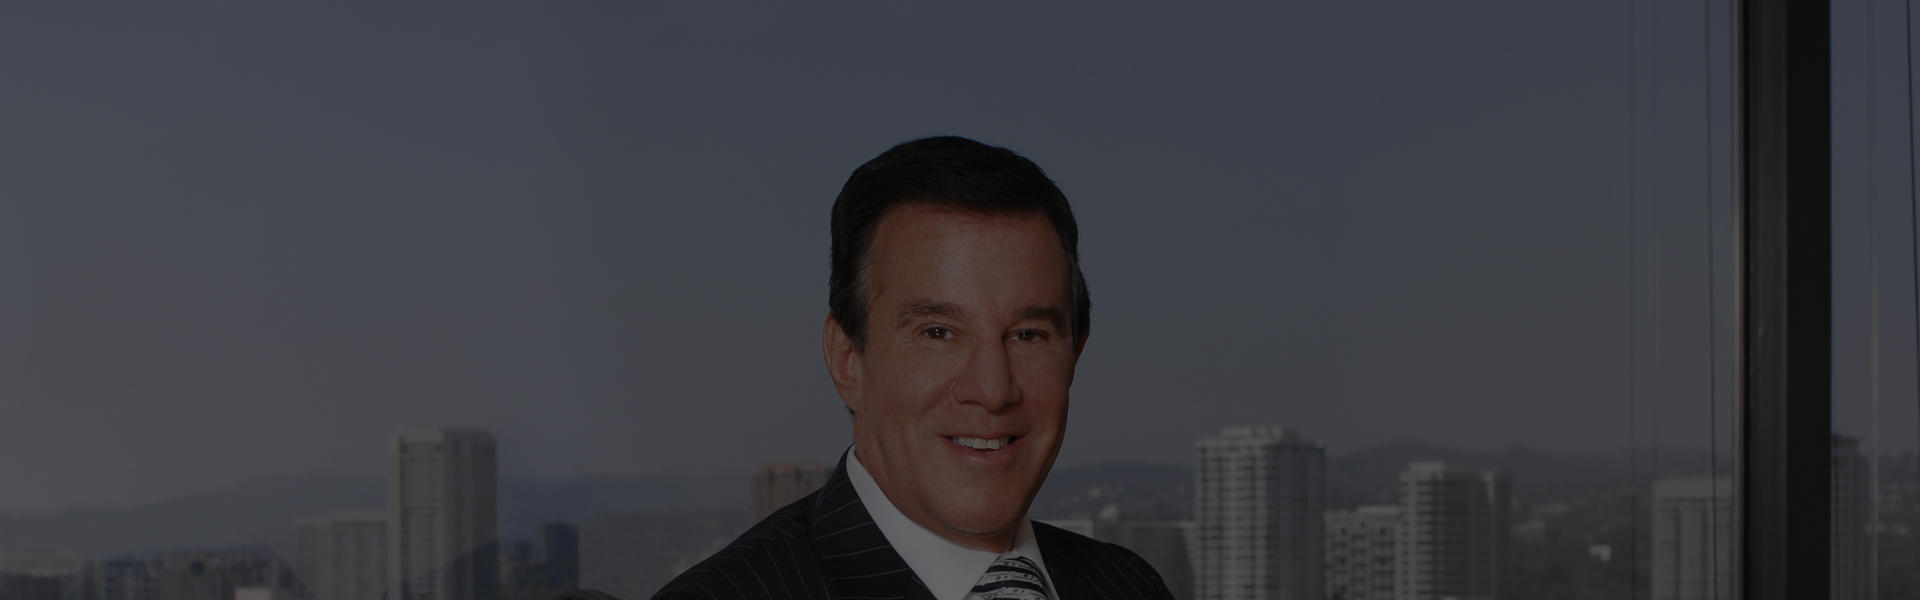 Robert Weiss - Principal Attorney